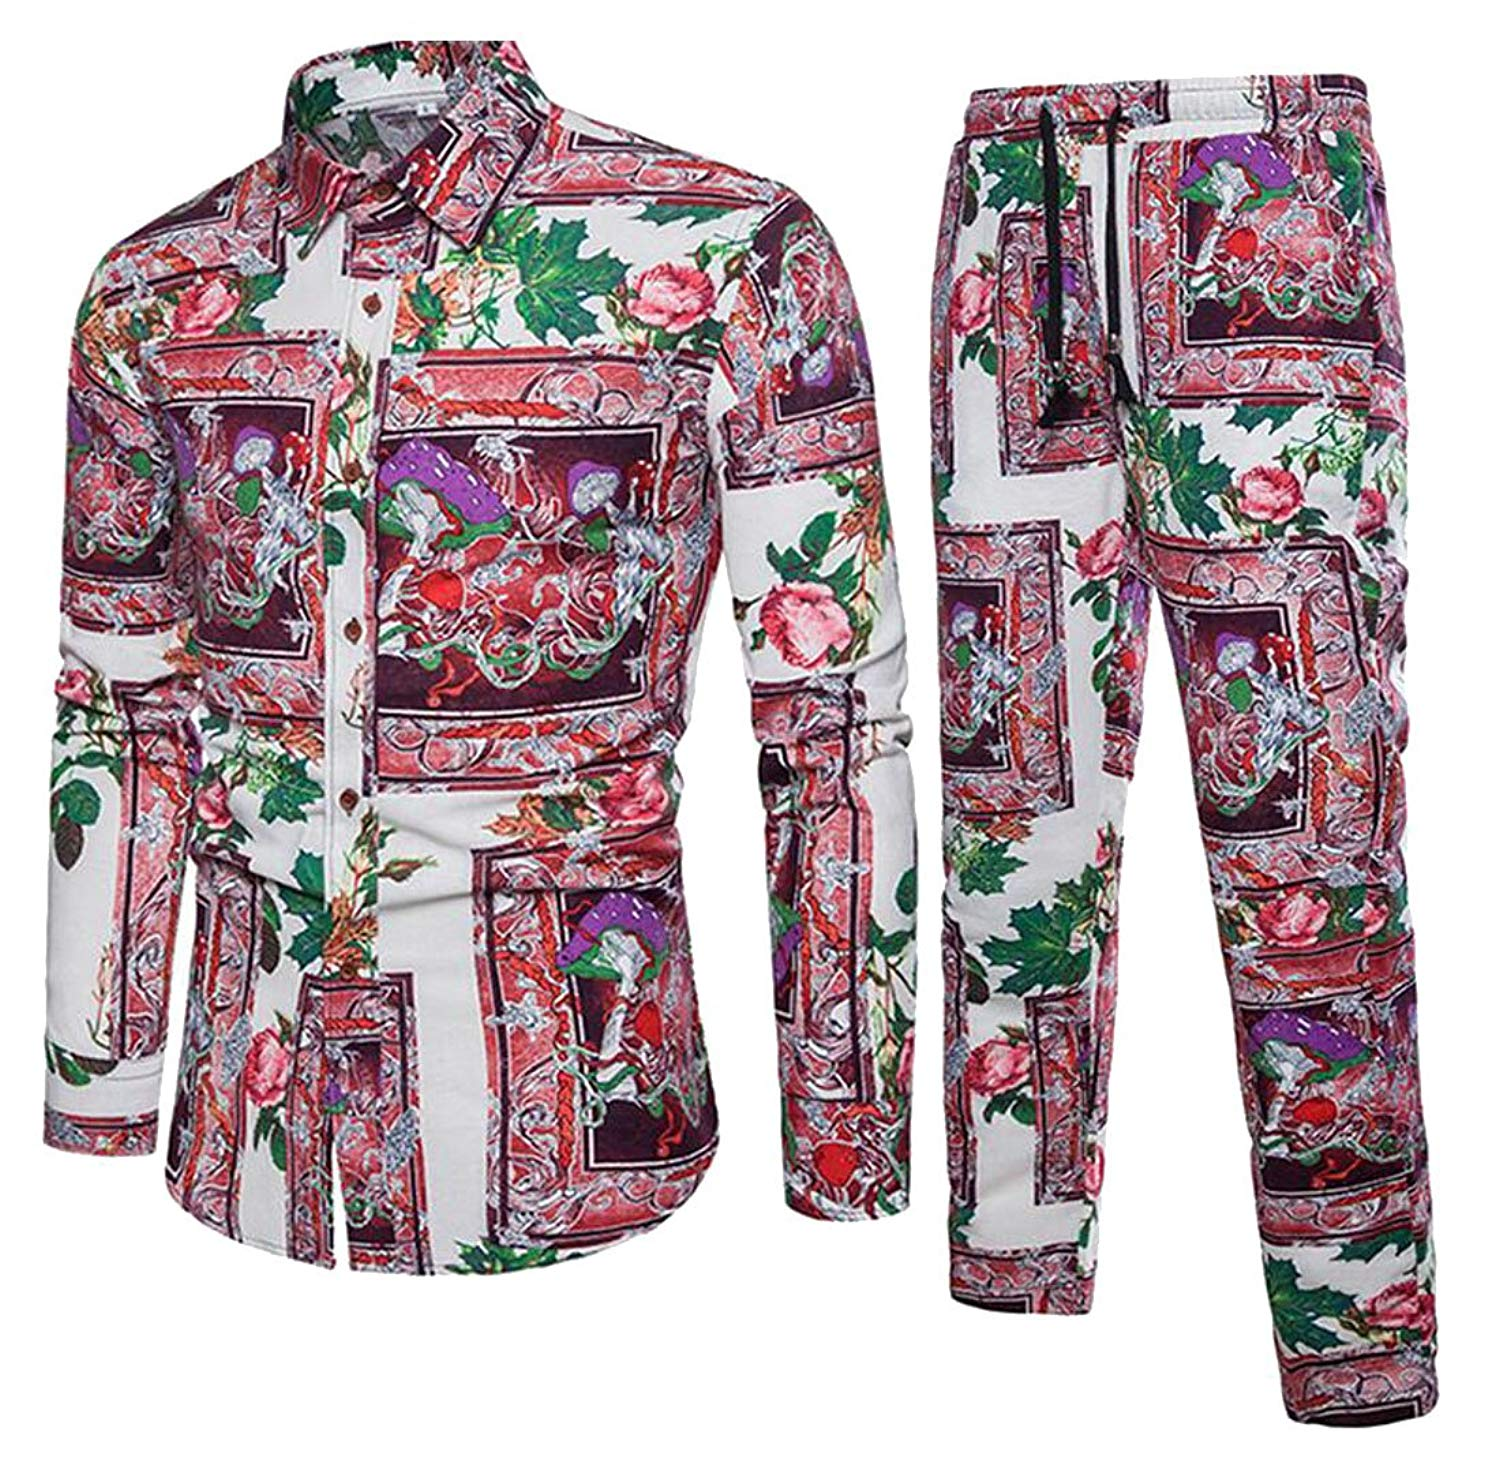 Jofemuho Mens Ethnic Printed Button Down Shirt & Harem Pants Loose Linen 2 Pcs Outfits